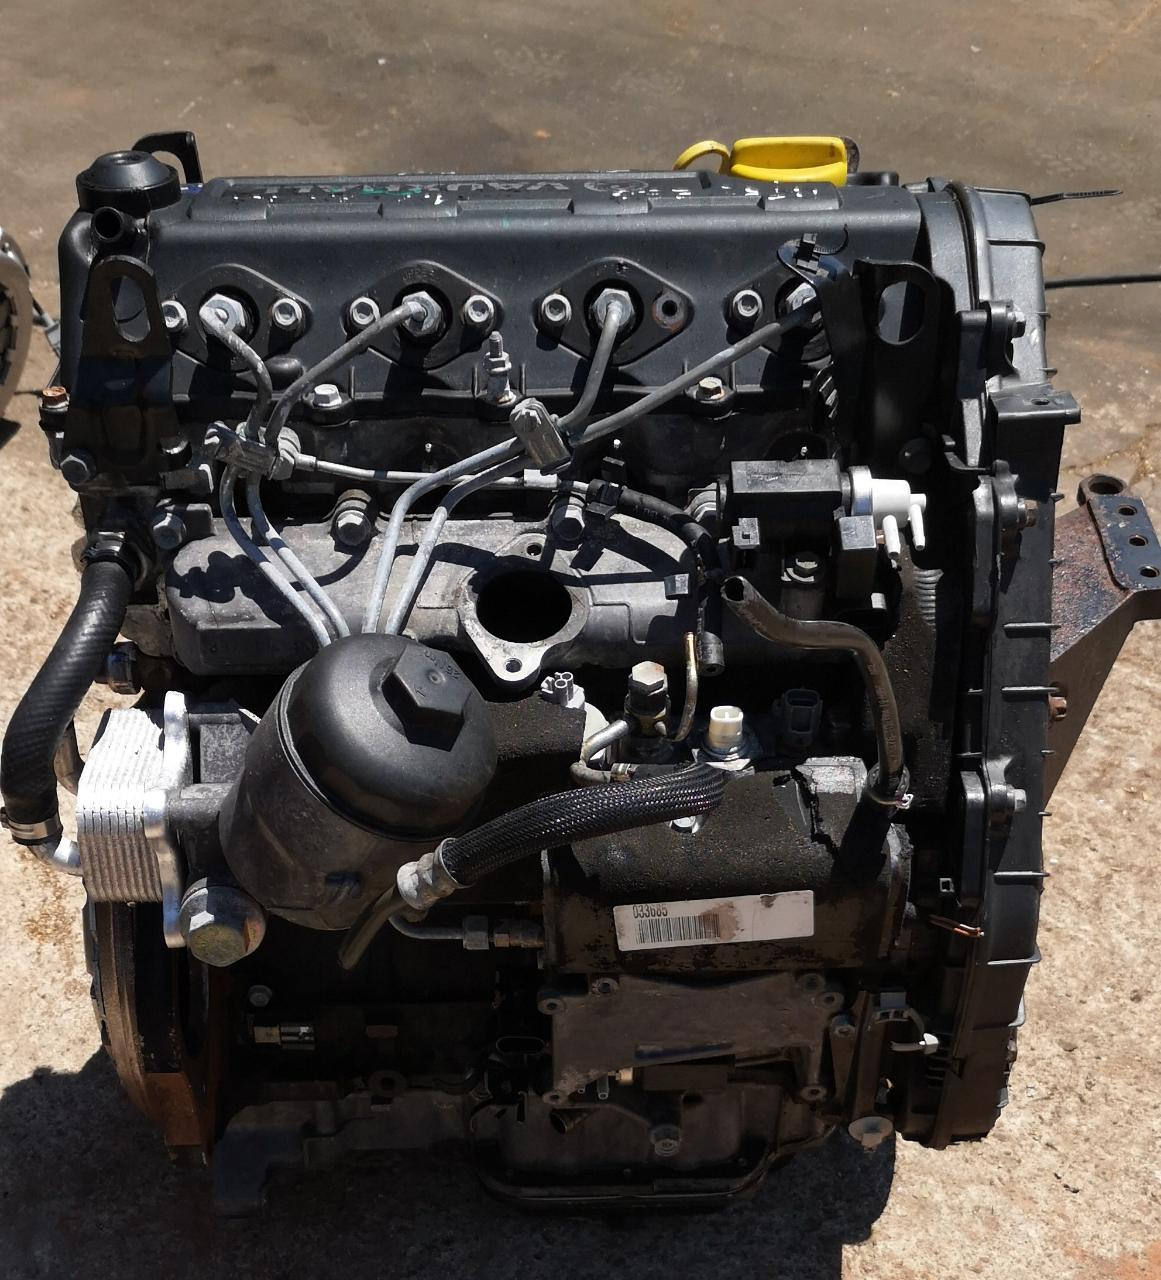 OPEL CORSA GAMMA 1.7 DTI Y17DT ENGINE FOR SALE